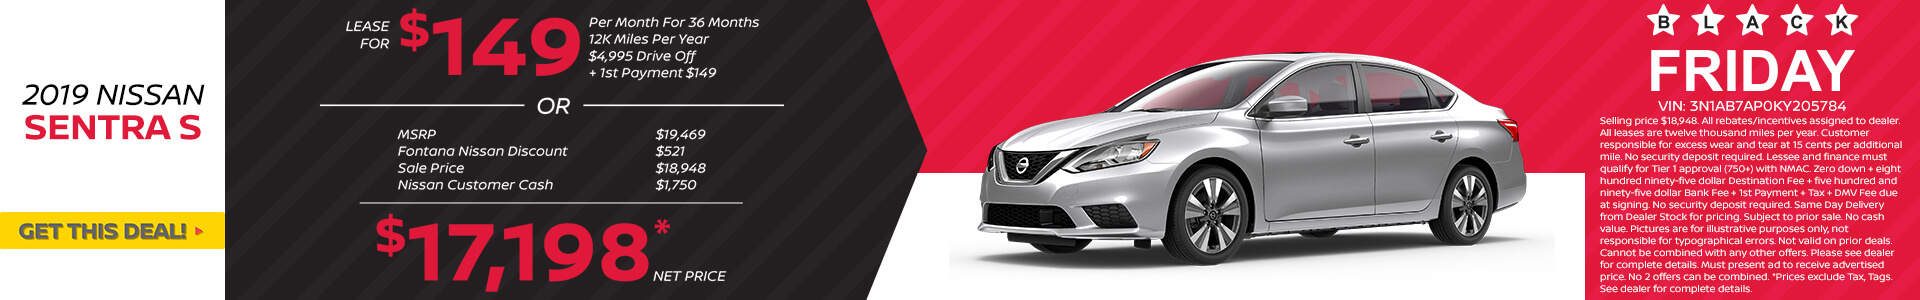 Nissan Sentra $149 Lease or $17,198 Purchase